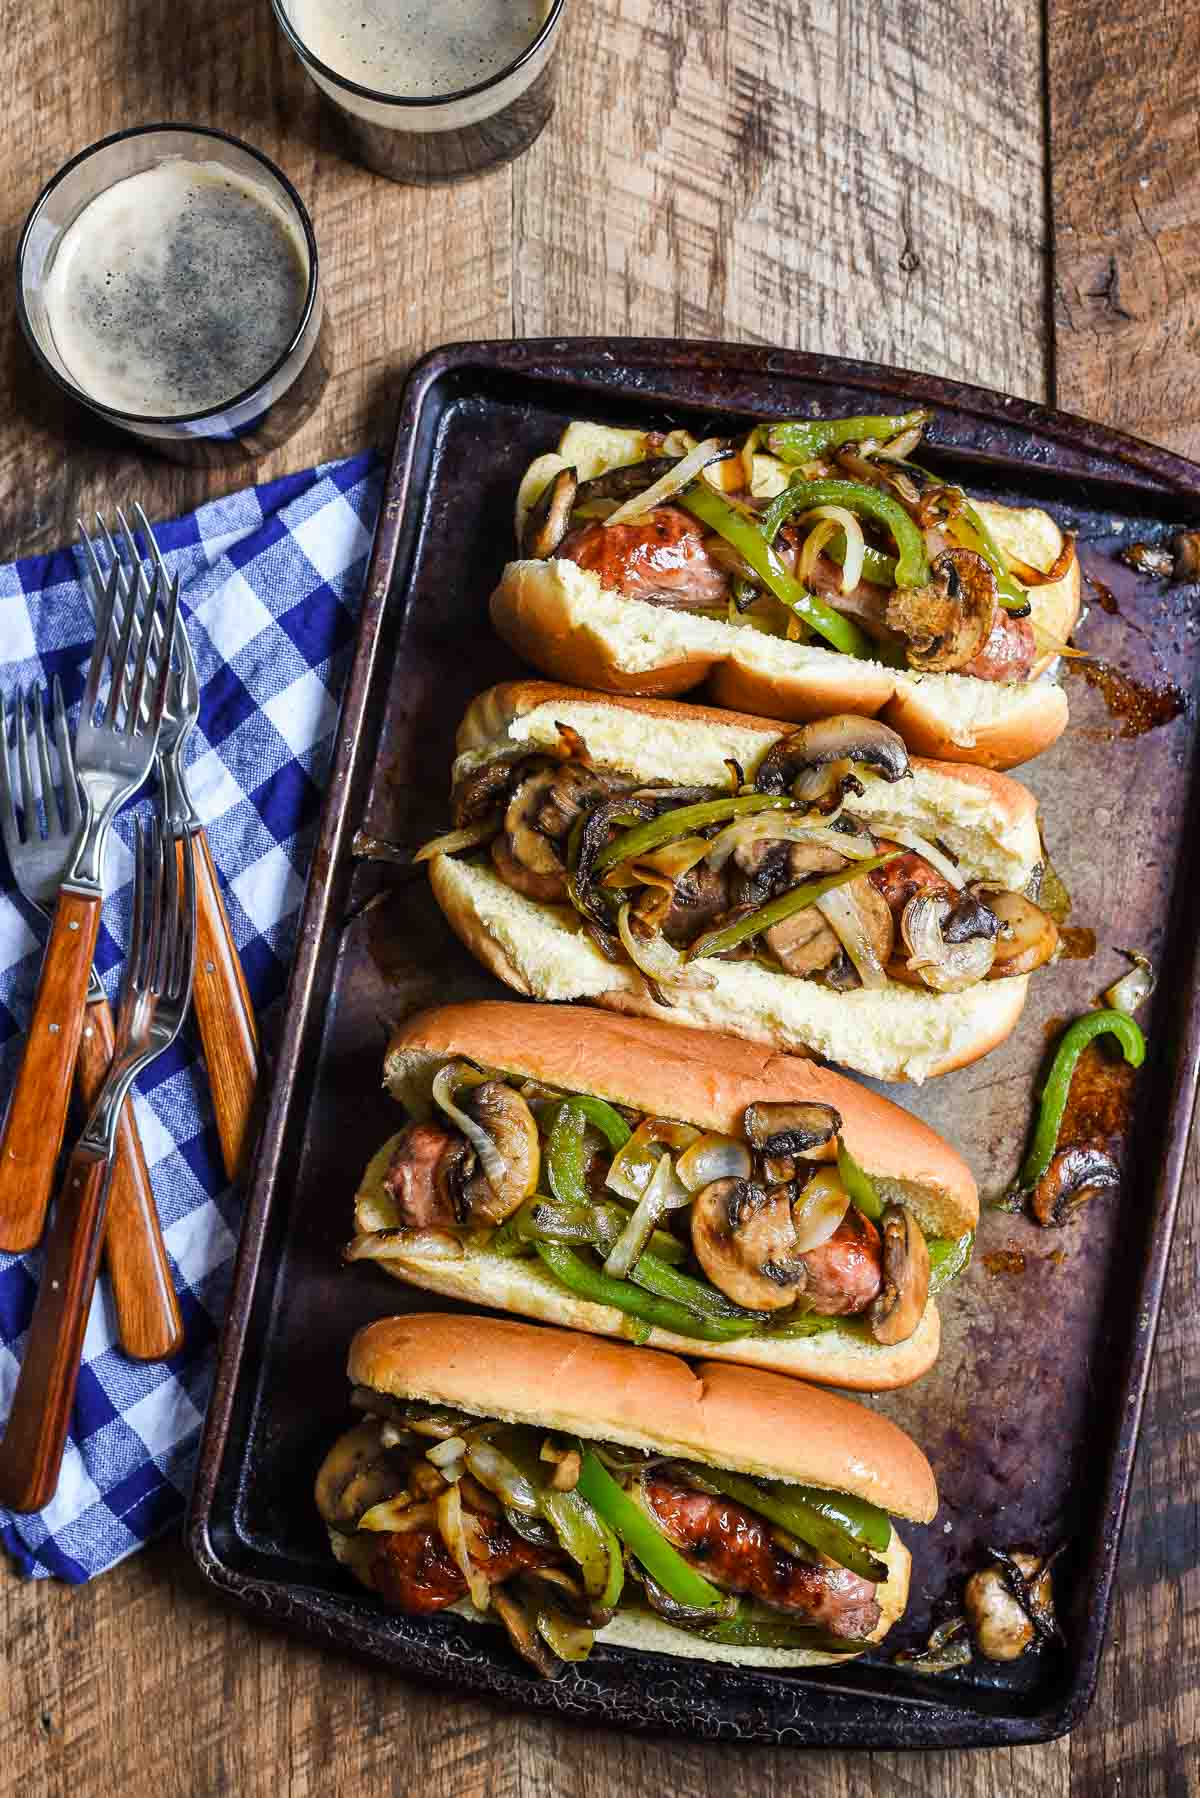 Philly Cheese Brats turn the classic philly into a great meal for the grill! This 30 minute meal will definitely be a hit at your summer cookouts!